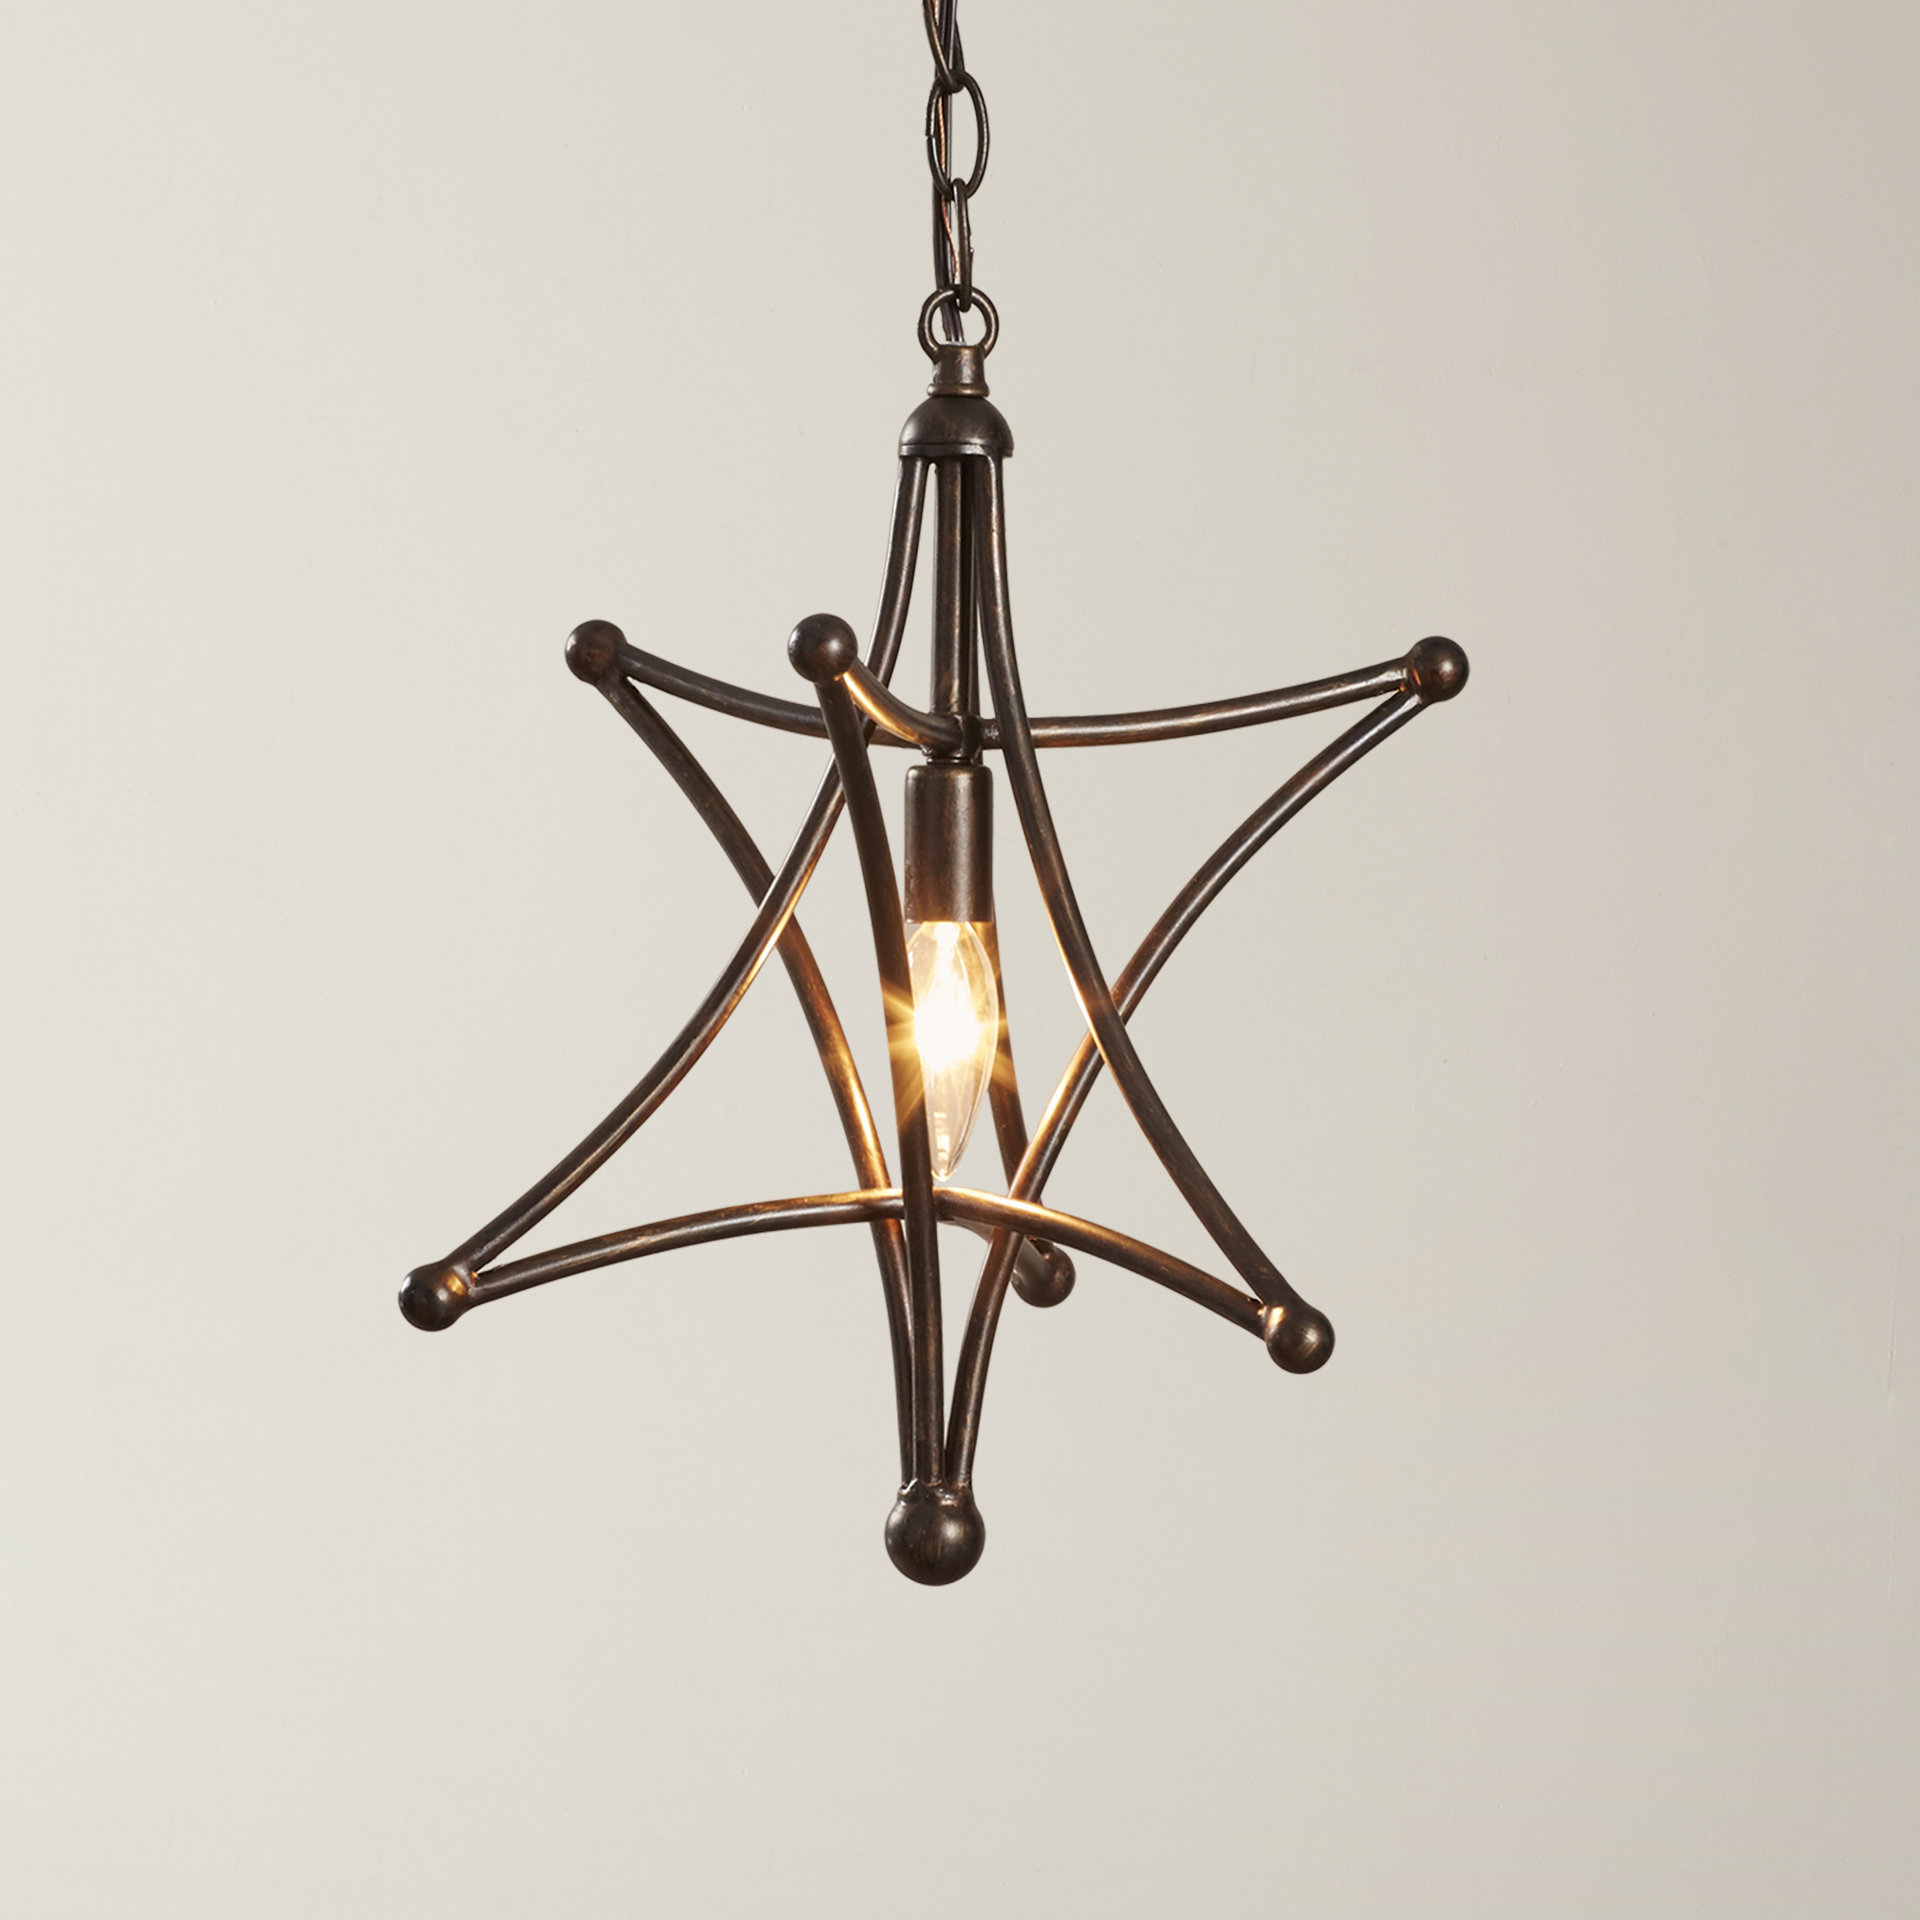 2020 Cynthia 1 Light Single Star Pendant For 1 Light Single Star Pendants (View 7 of 20)